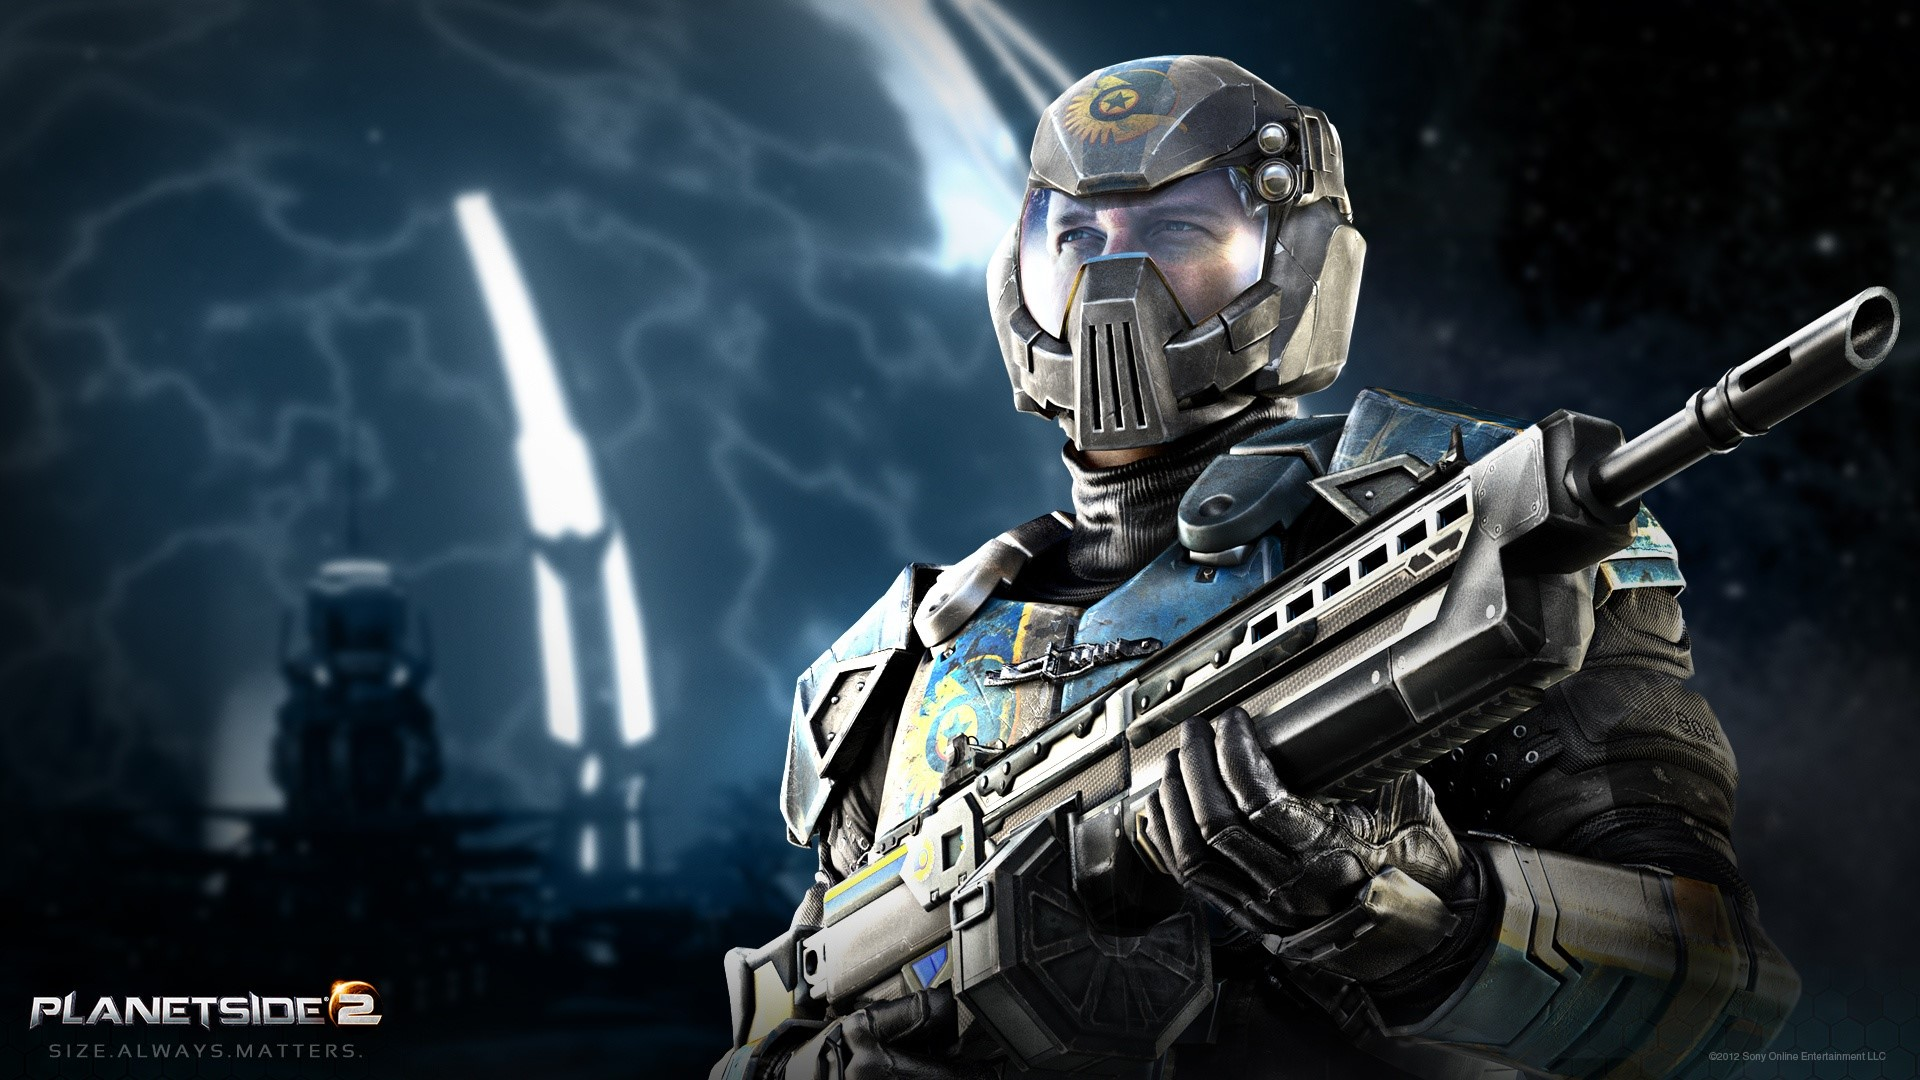 Wallpaper Planetside 2 Light assault